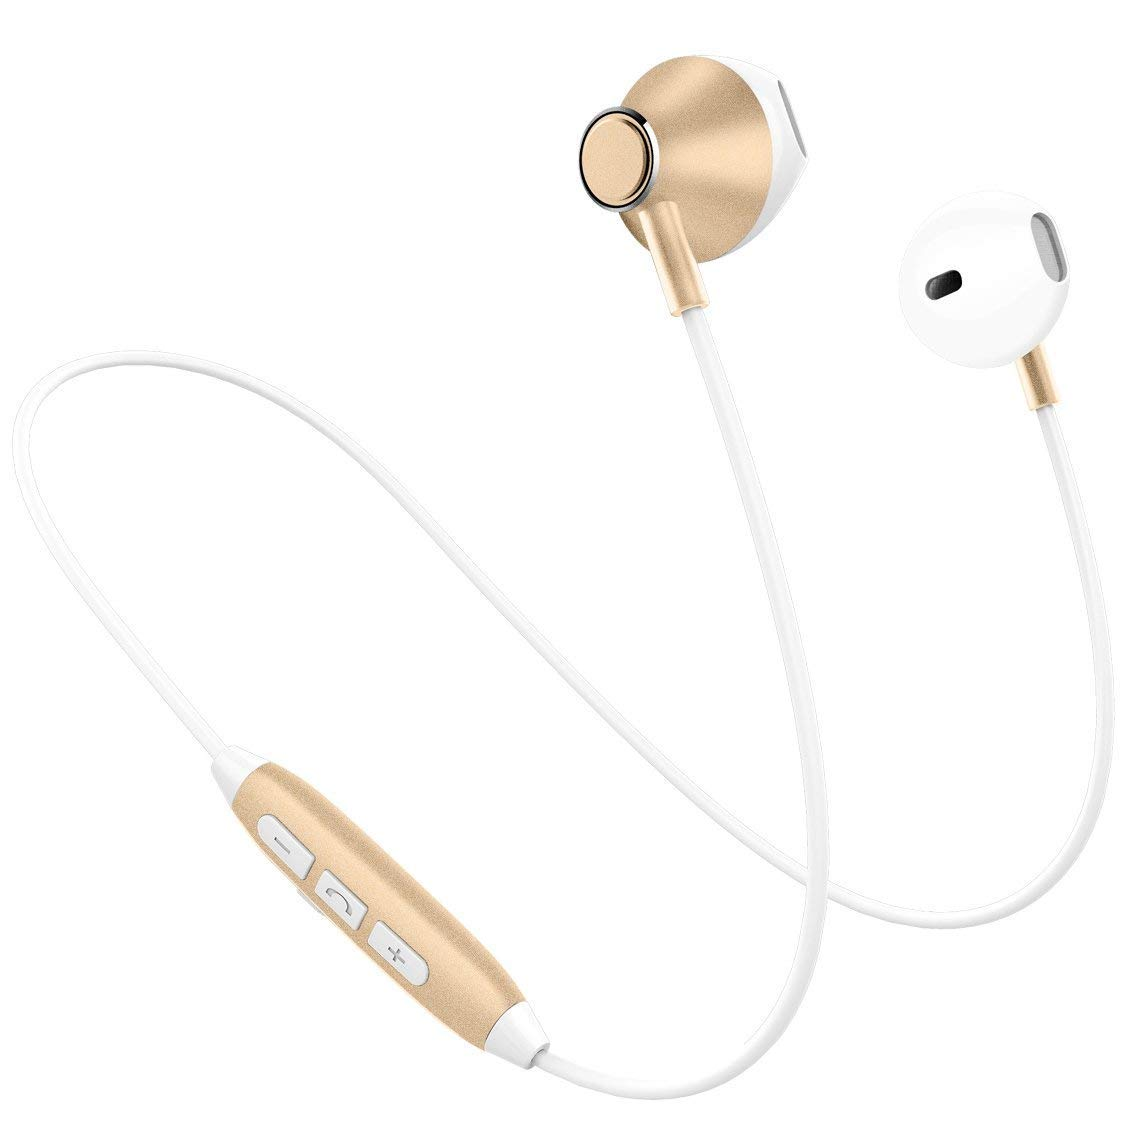 Bluetooth Headphones, Wireless Sport Earphones, Noise Cancelling HD Stereo Magnetic Wireless Earbuds with Mic, Sweatproof, IPX4 Waterproof Lightweight Secure fit for Work Out Gym Running(White Gold) Picun